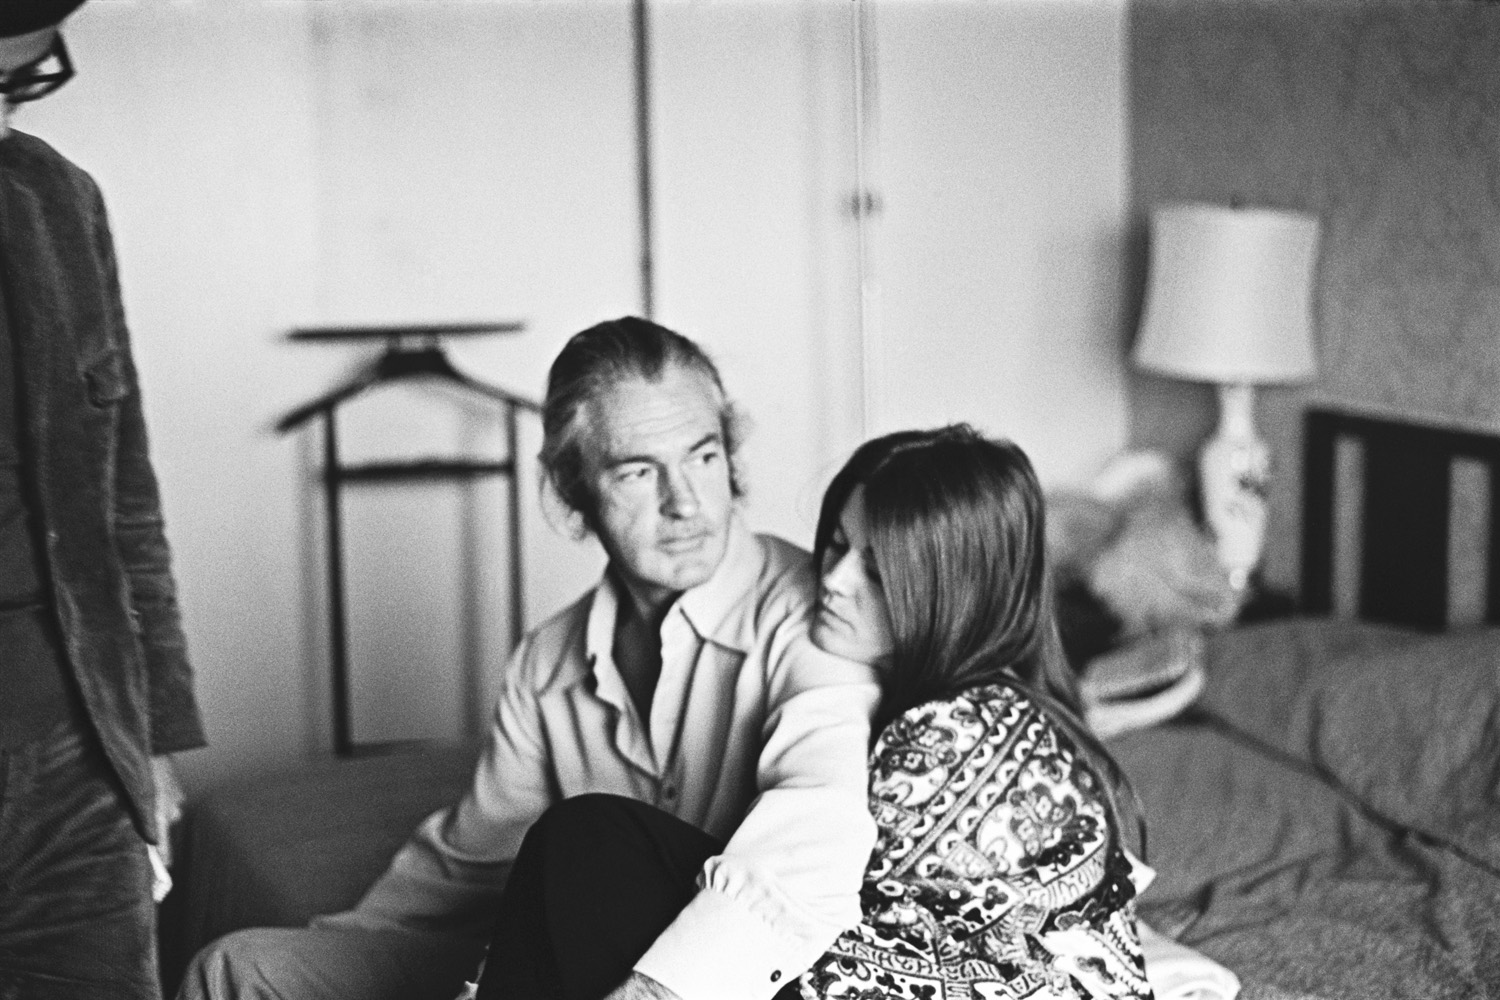 Timothy Leary and his wife Rosemary in room 1742 at the hotel.